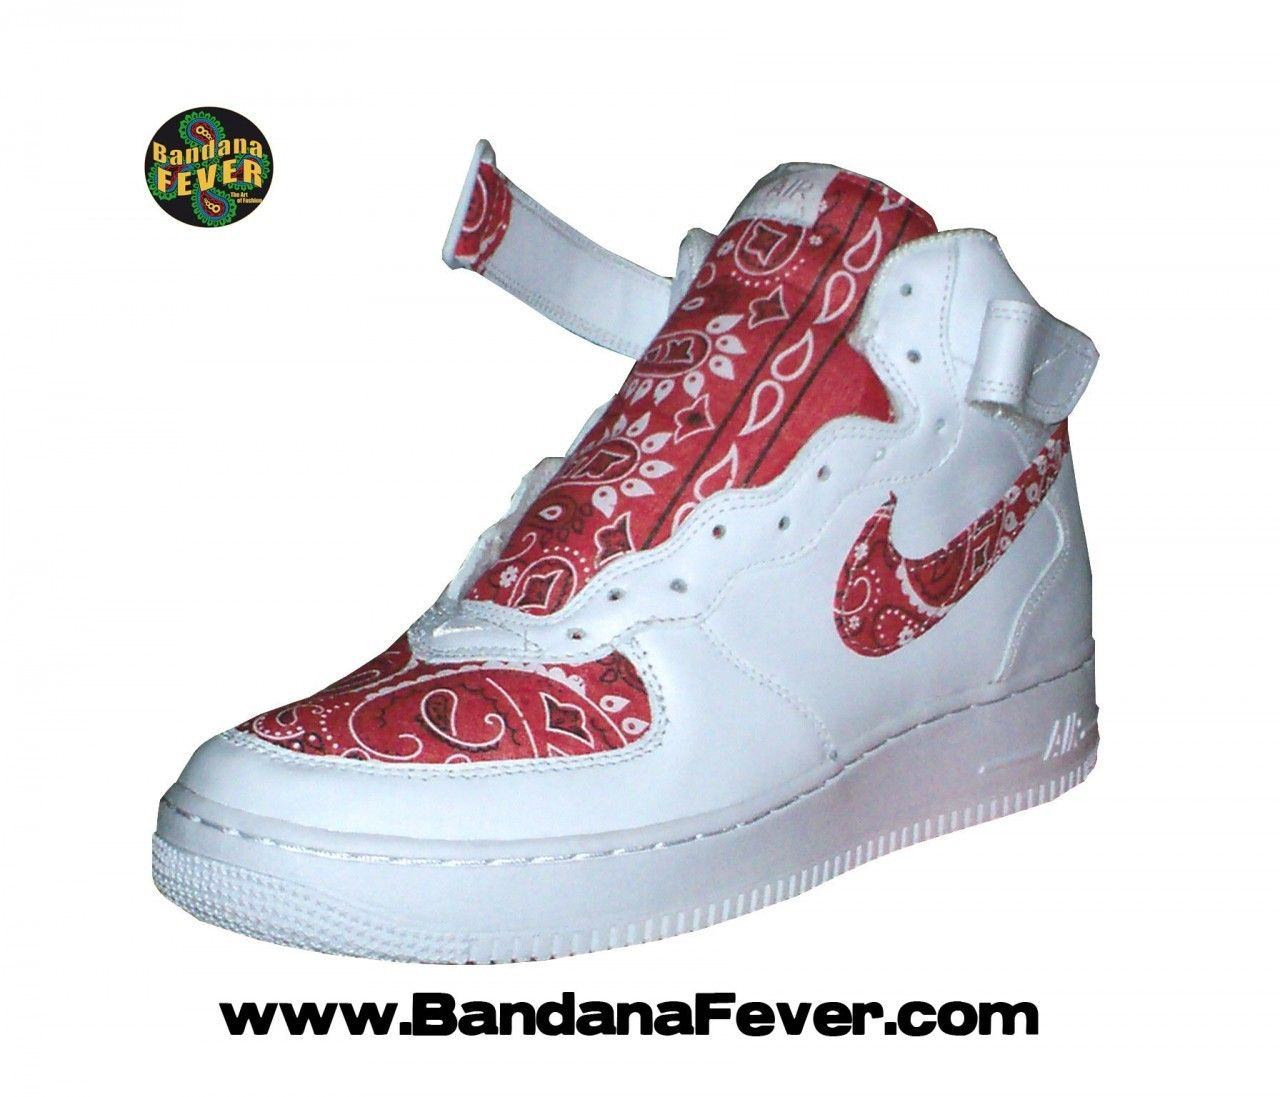 best service 00ad2 eaf19 Bandana Fever - - Bandana Fever Custom Bandana Nike Air Force 1 Mid White  Red